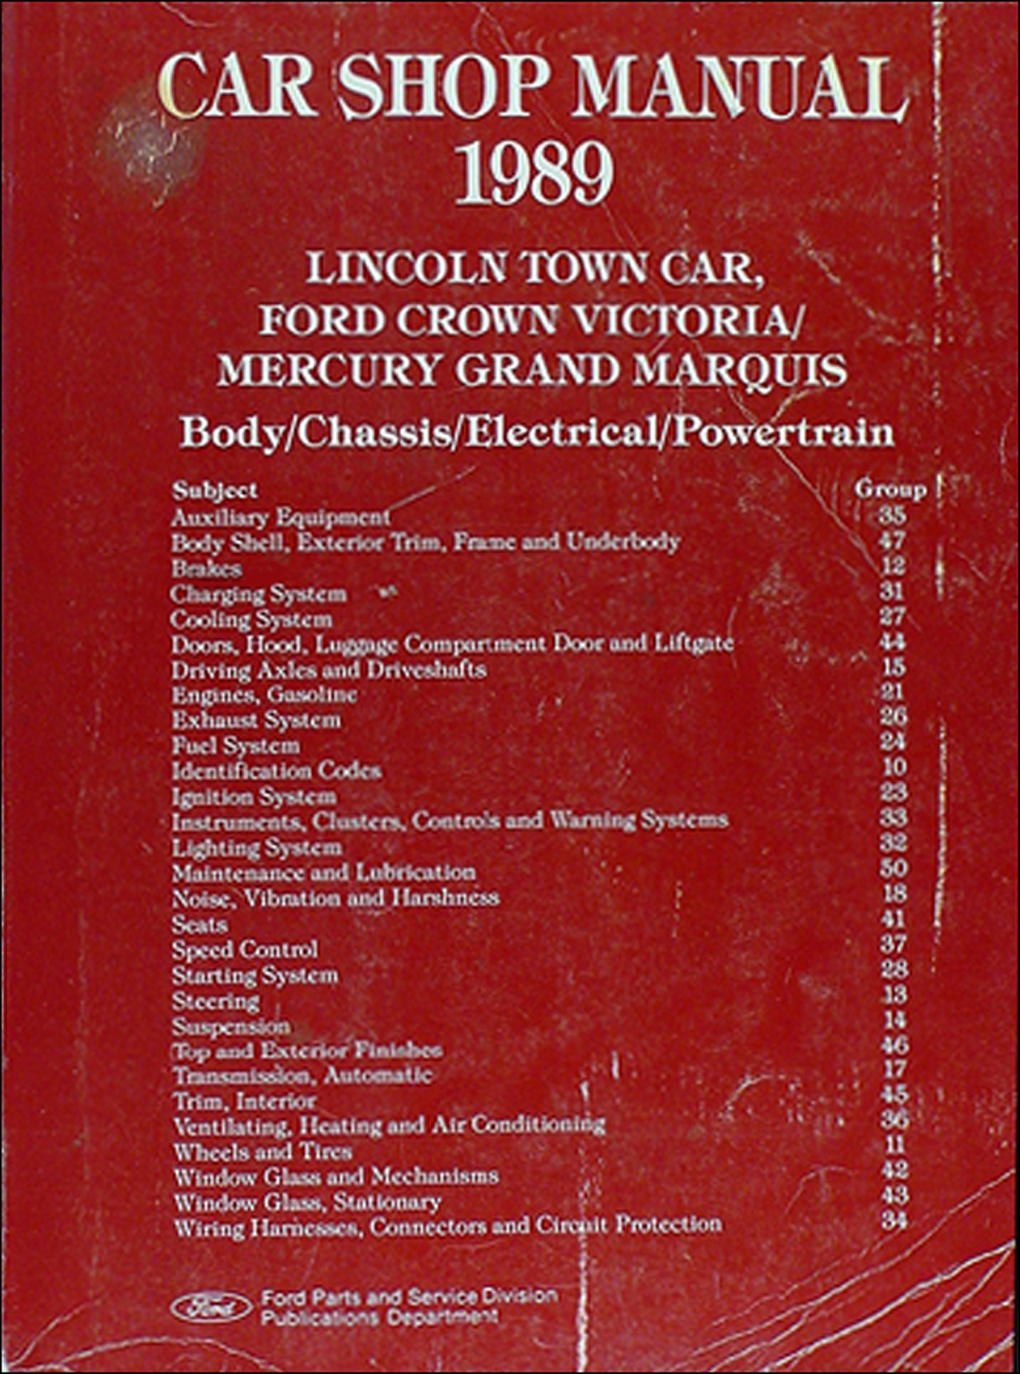 1989 Lincoln Town Car Electrical And Vacuum Troubleshooting Manual Hose Diagram Wiring Ford Crown Victoria Mercury Grand Marquis Repair Shop Original